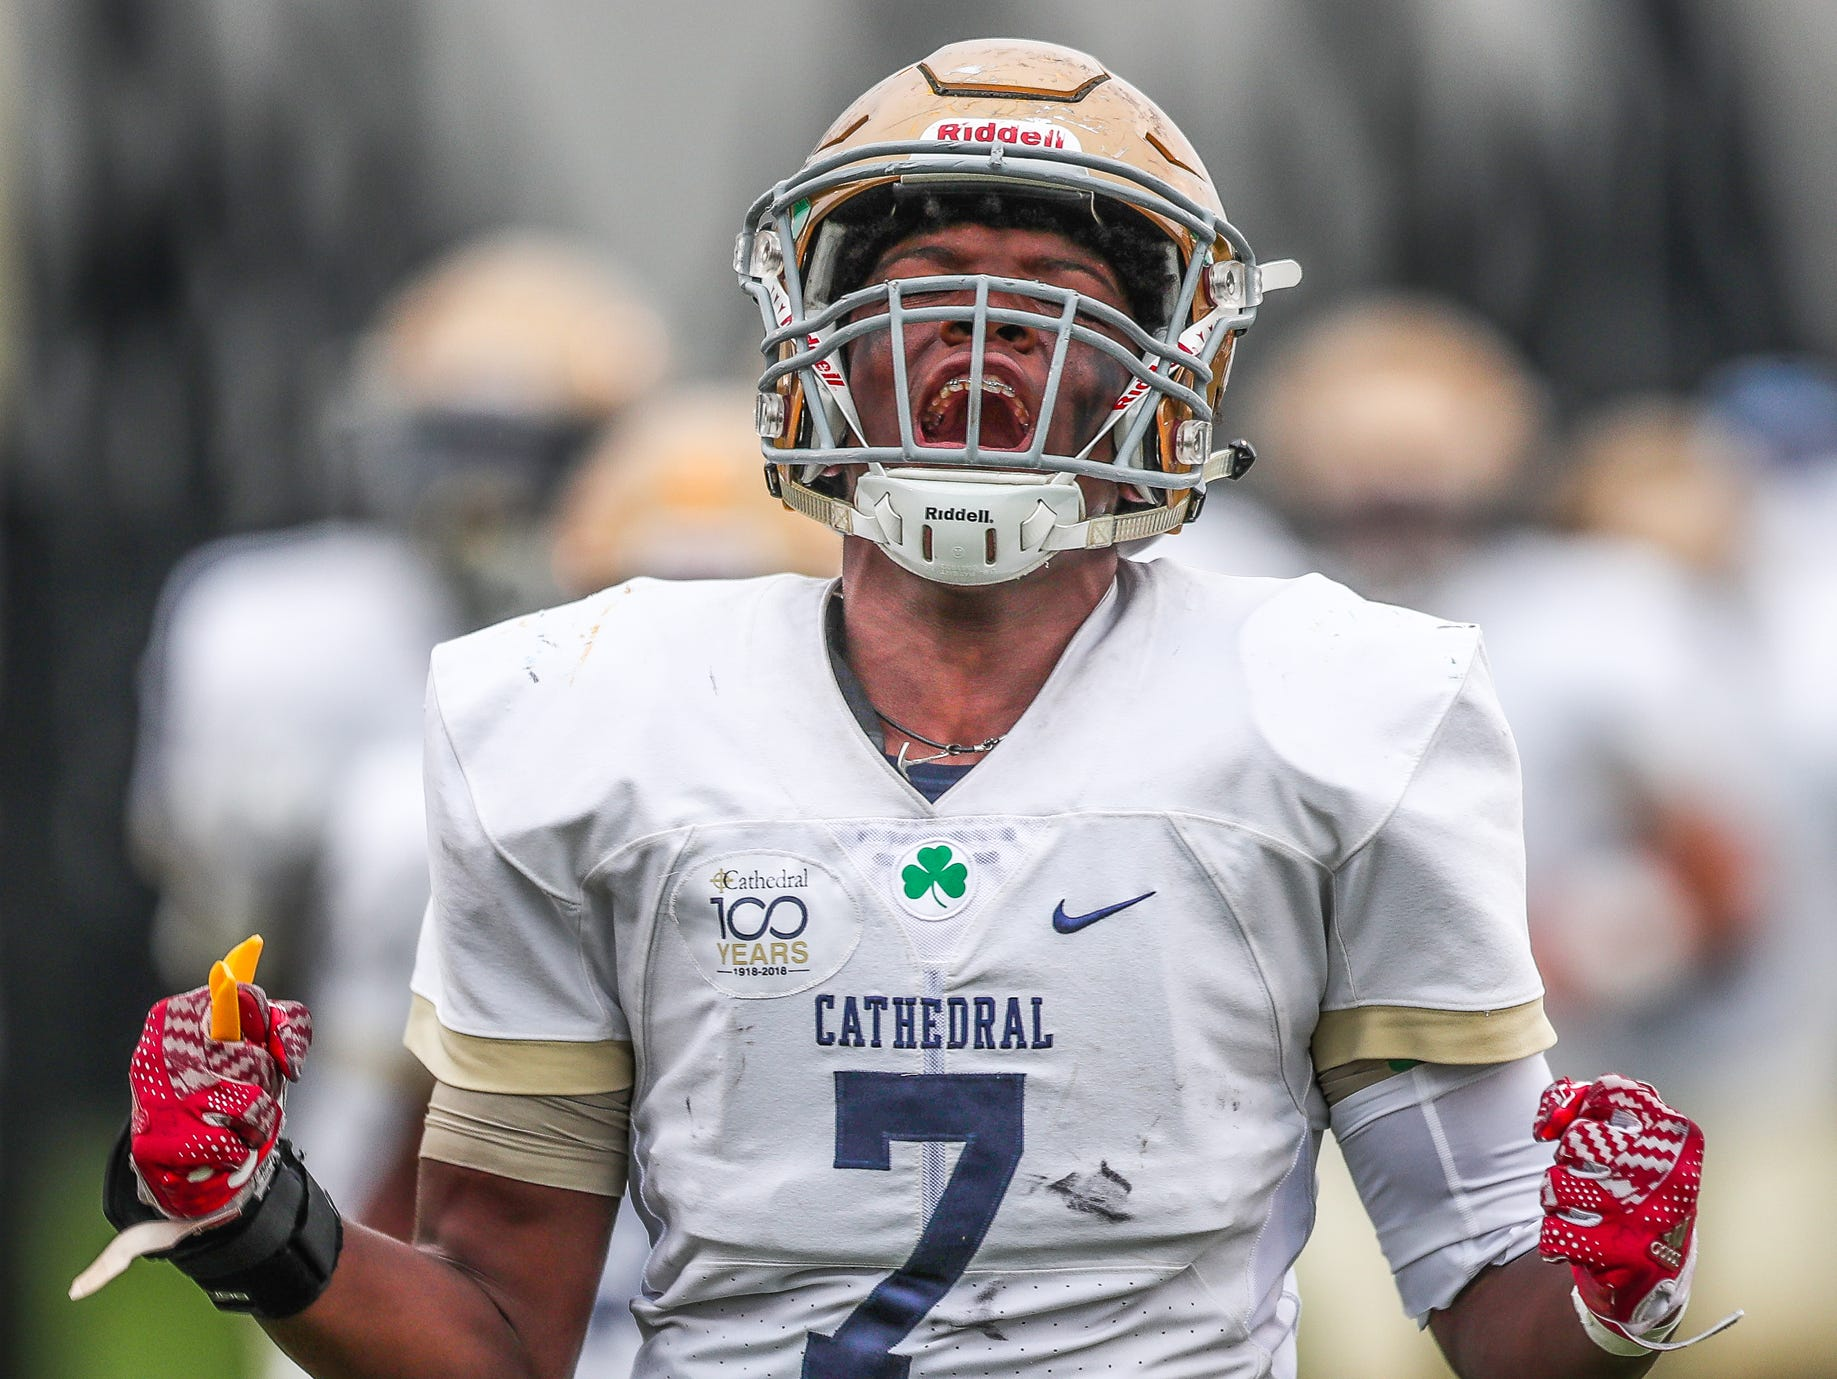 Cathedral's William Chapman (7) takes the field along with the rest of the Fighting Irish to face off against the Brownsburg Bulldogs at Brownsburg High School on Friday, Aug. 24, 2018.